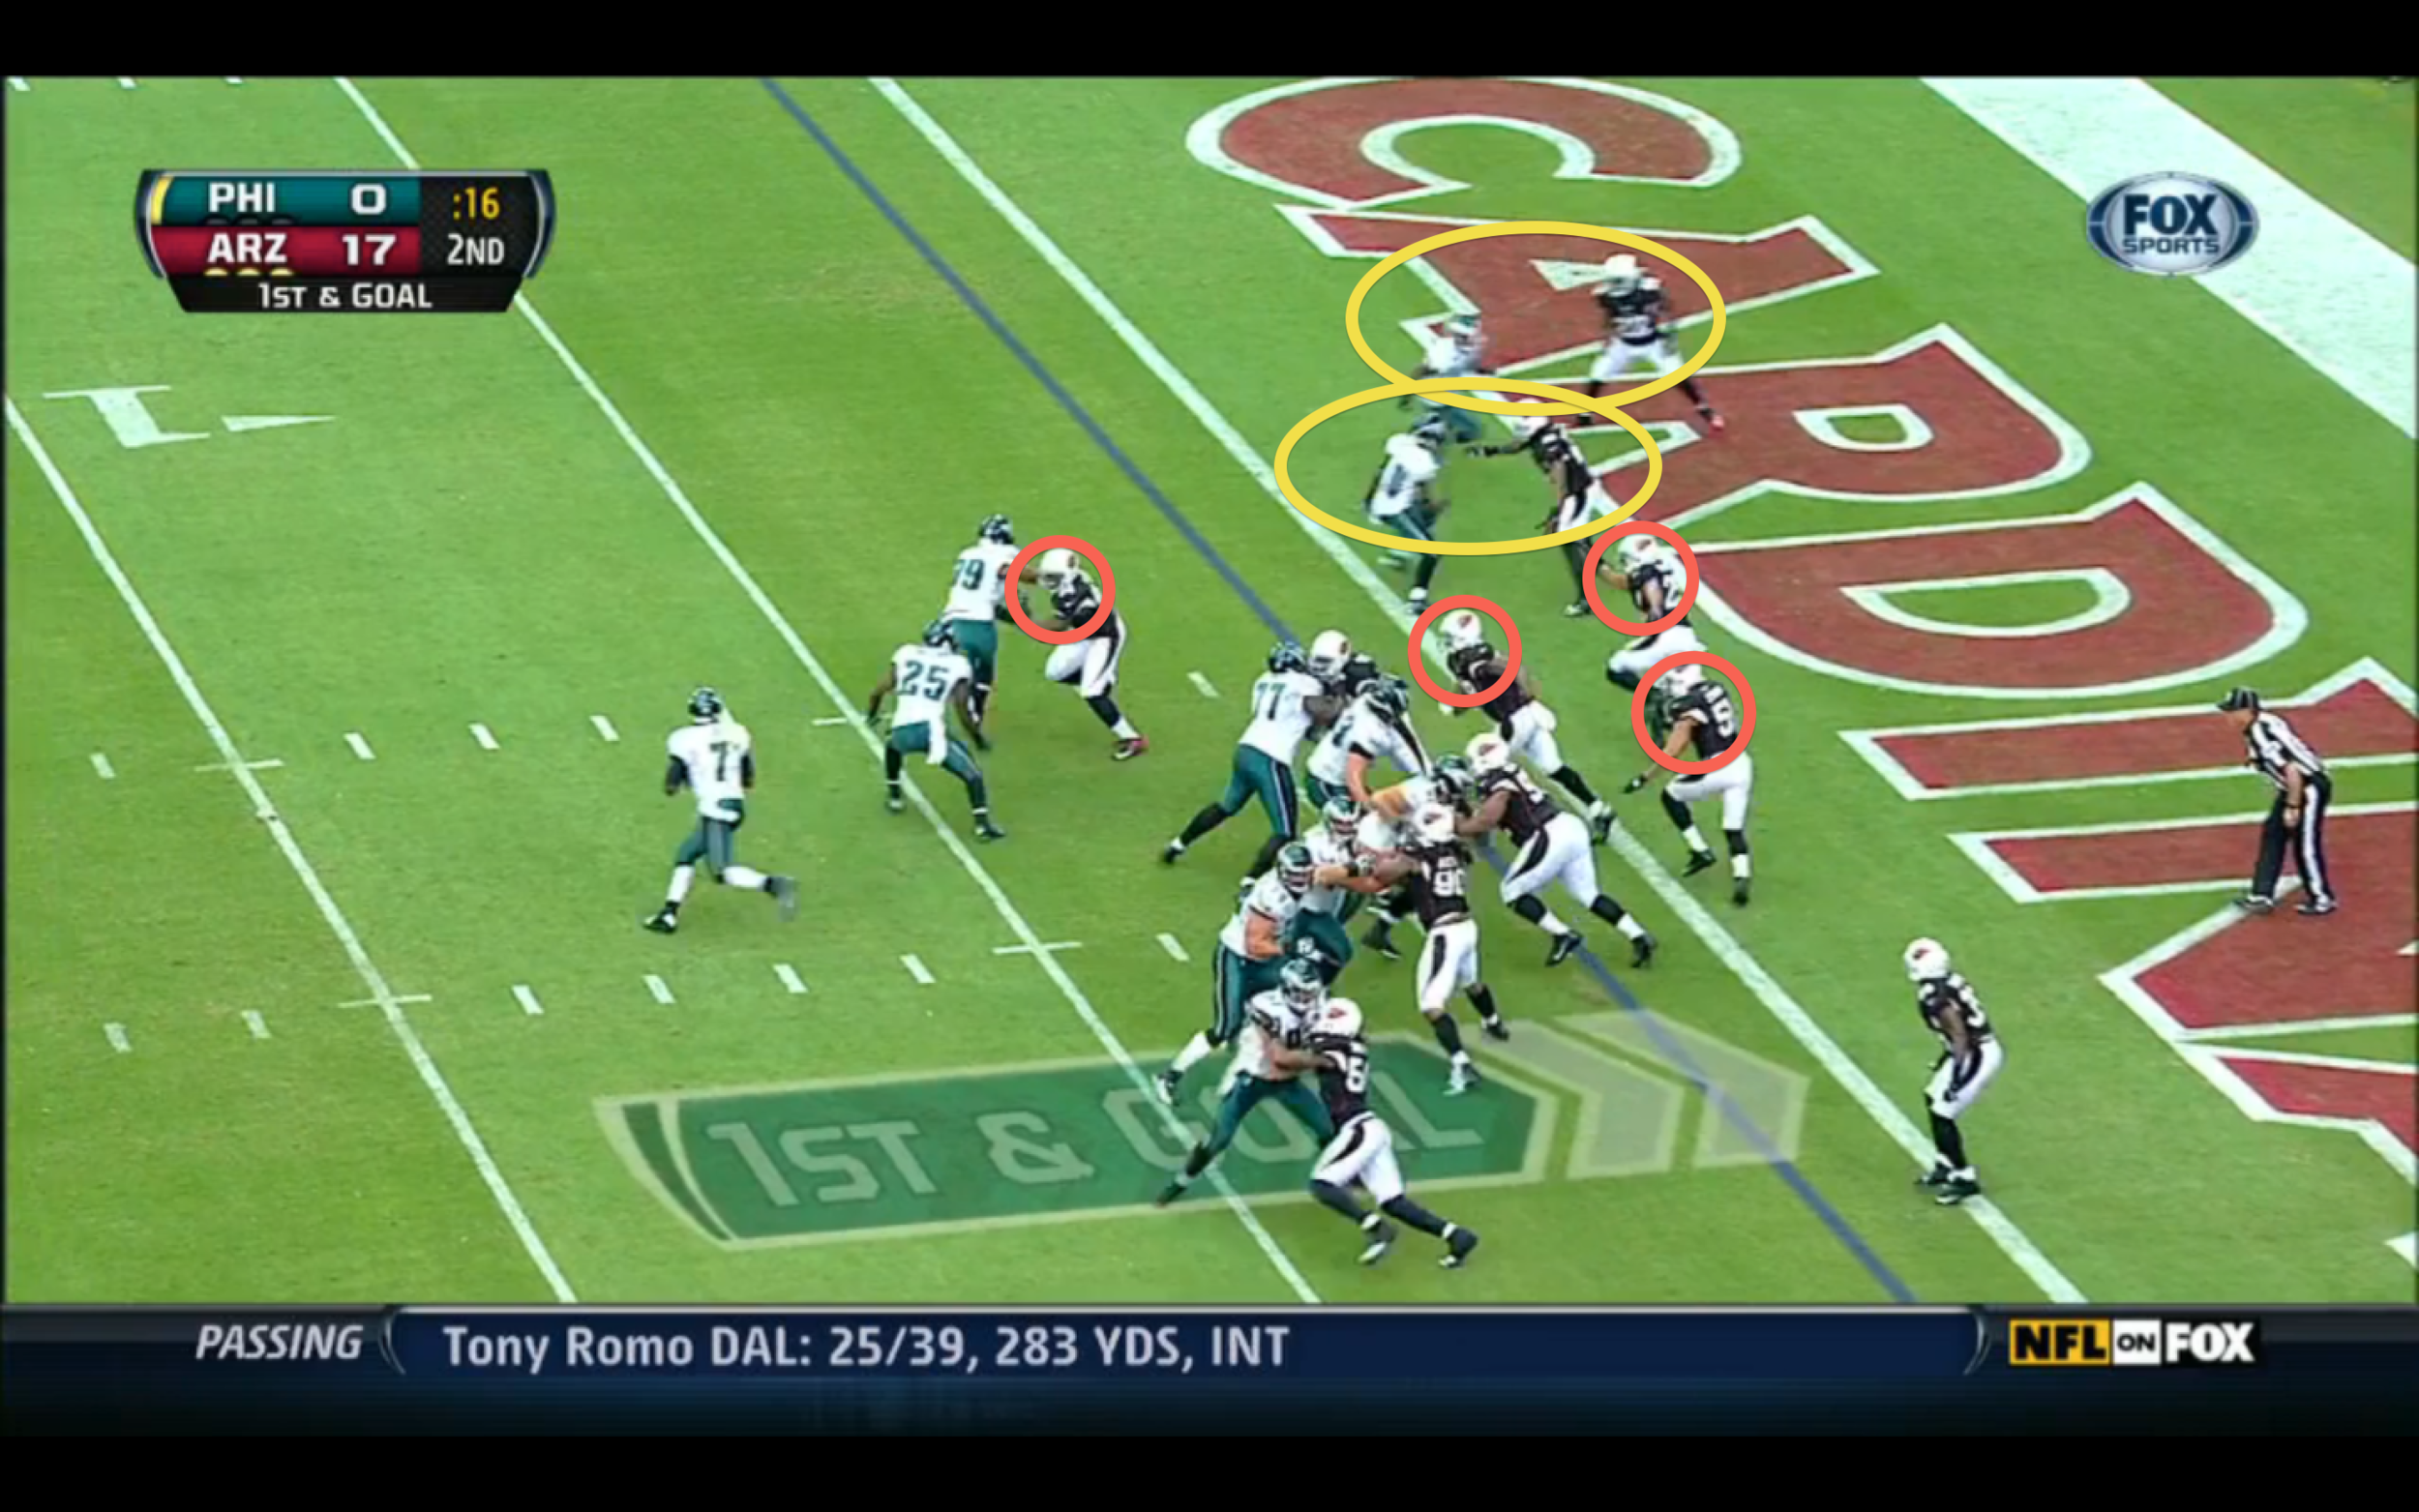 Here's what Vick sees when he first drops back. Not much there.